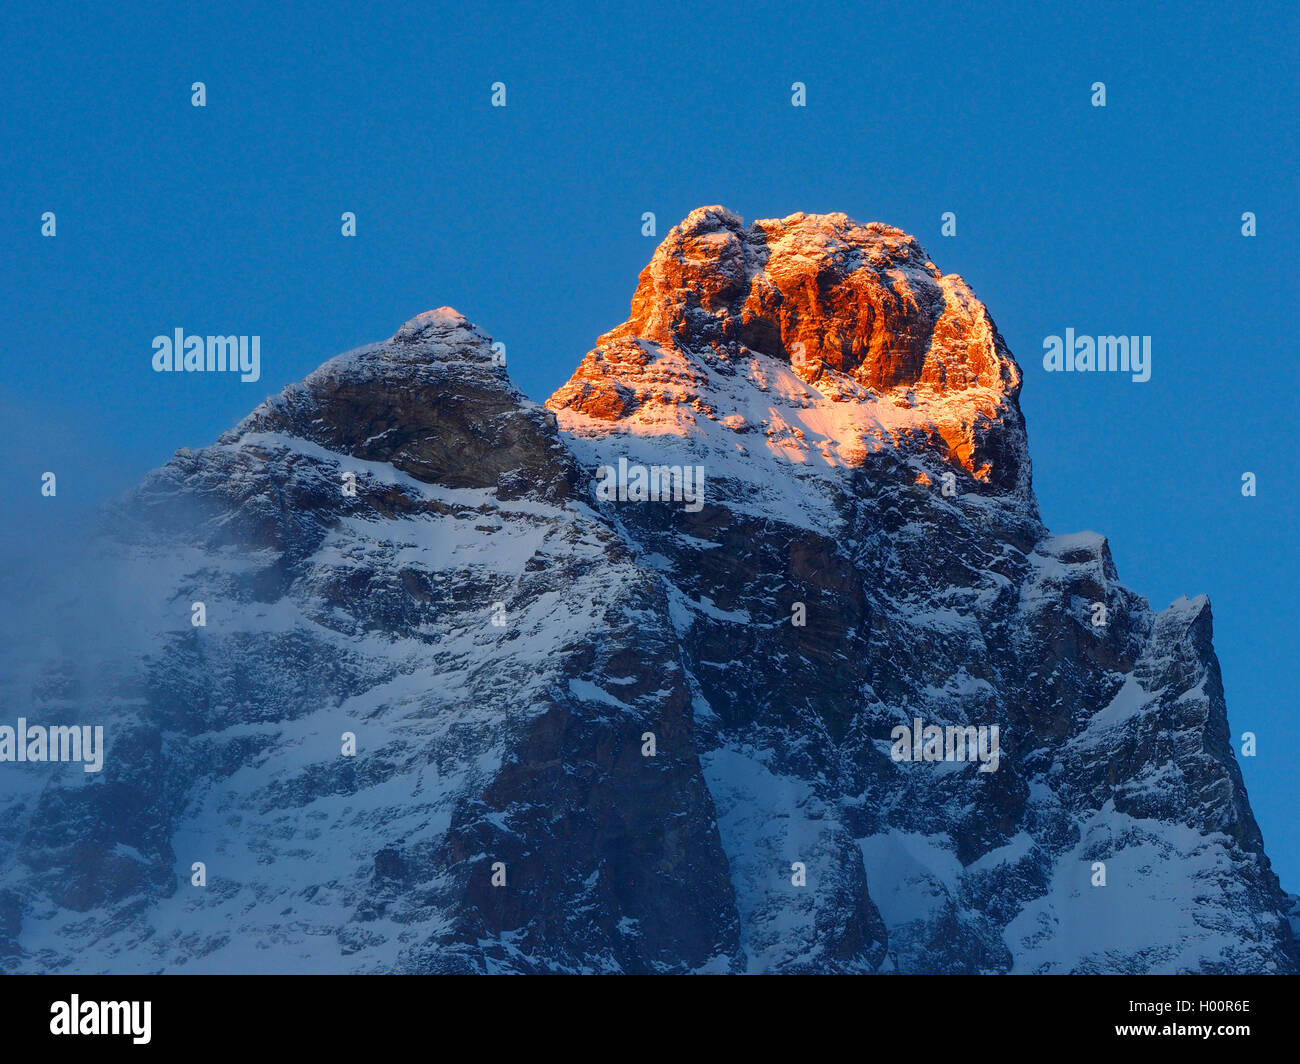 Monte Cervino (Matterhorn) view from Cervinia , Italy, Cervinia Stock Photo